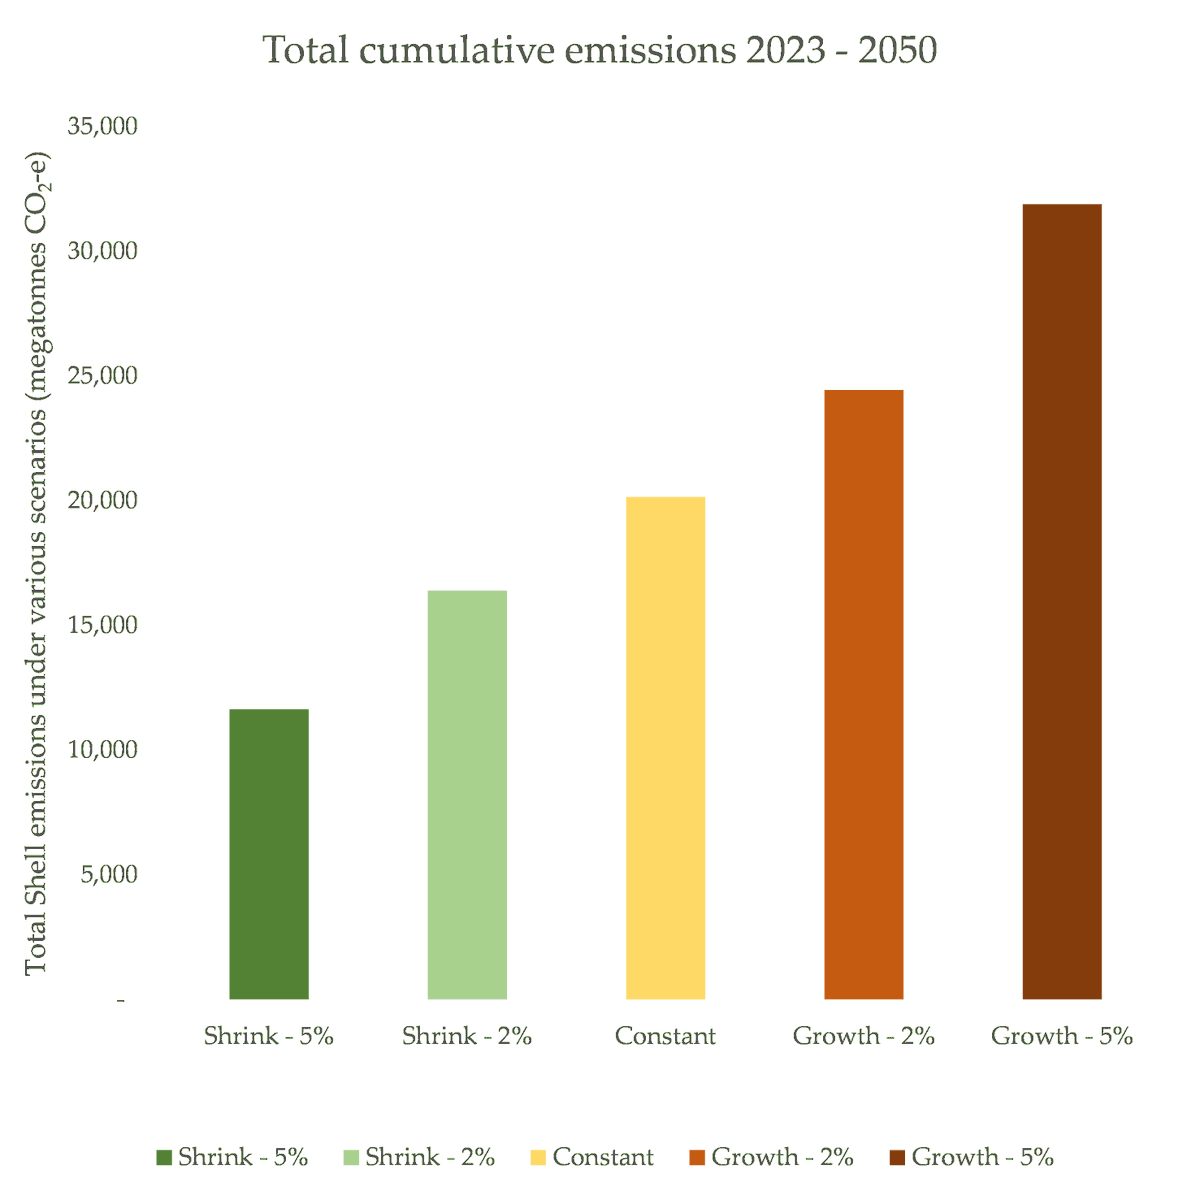 In February, I wrote about Shell's preliminary climate plans. The crux: using an 'intensity' targets means Shell can basically do what they like for absolute emissions, simply by selling a bunch of other stuff alongside.  https://medium.com/lobbywatch/you-need-to-know-about-the-shell-game-ad1c0be32fa3